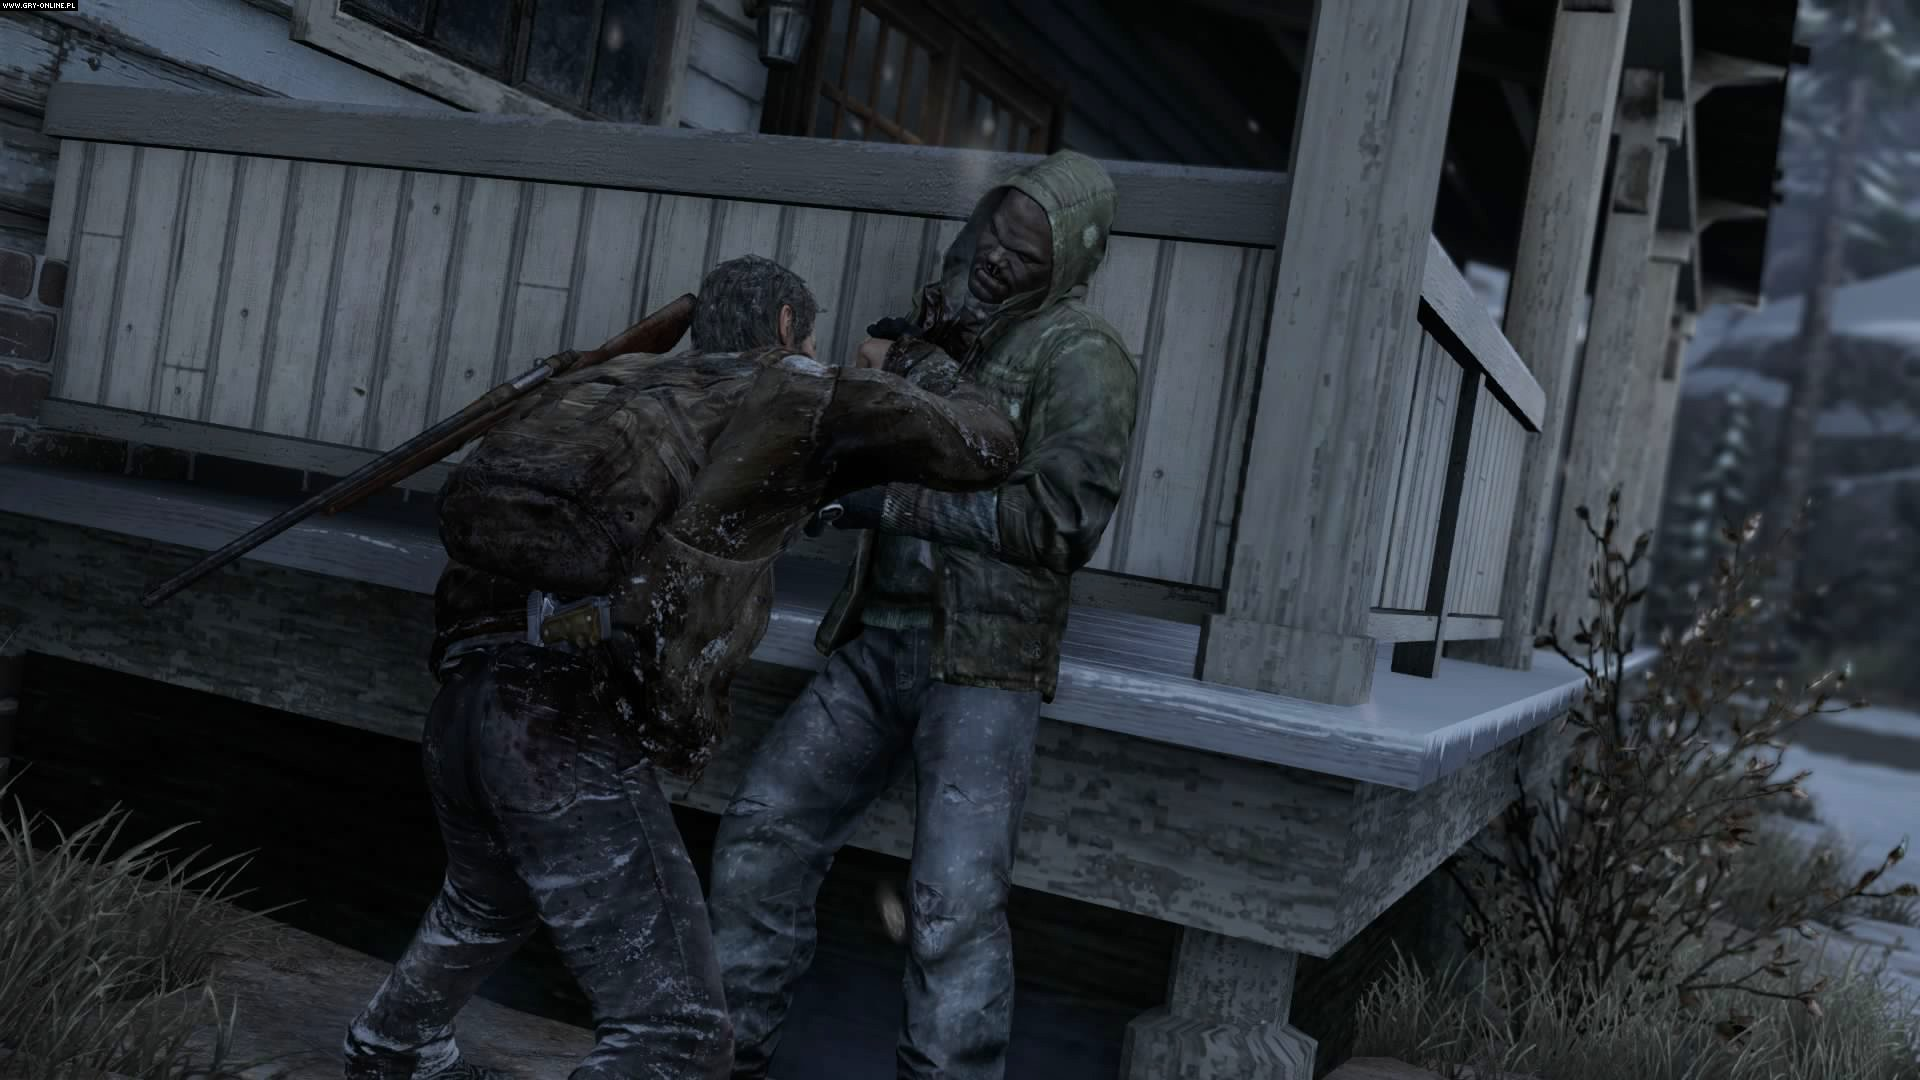 The Last of Us PS4 Games Image 8/201, Naughty Dog, Sony Interactive Entertainment